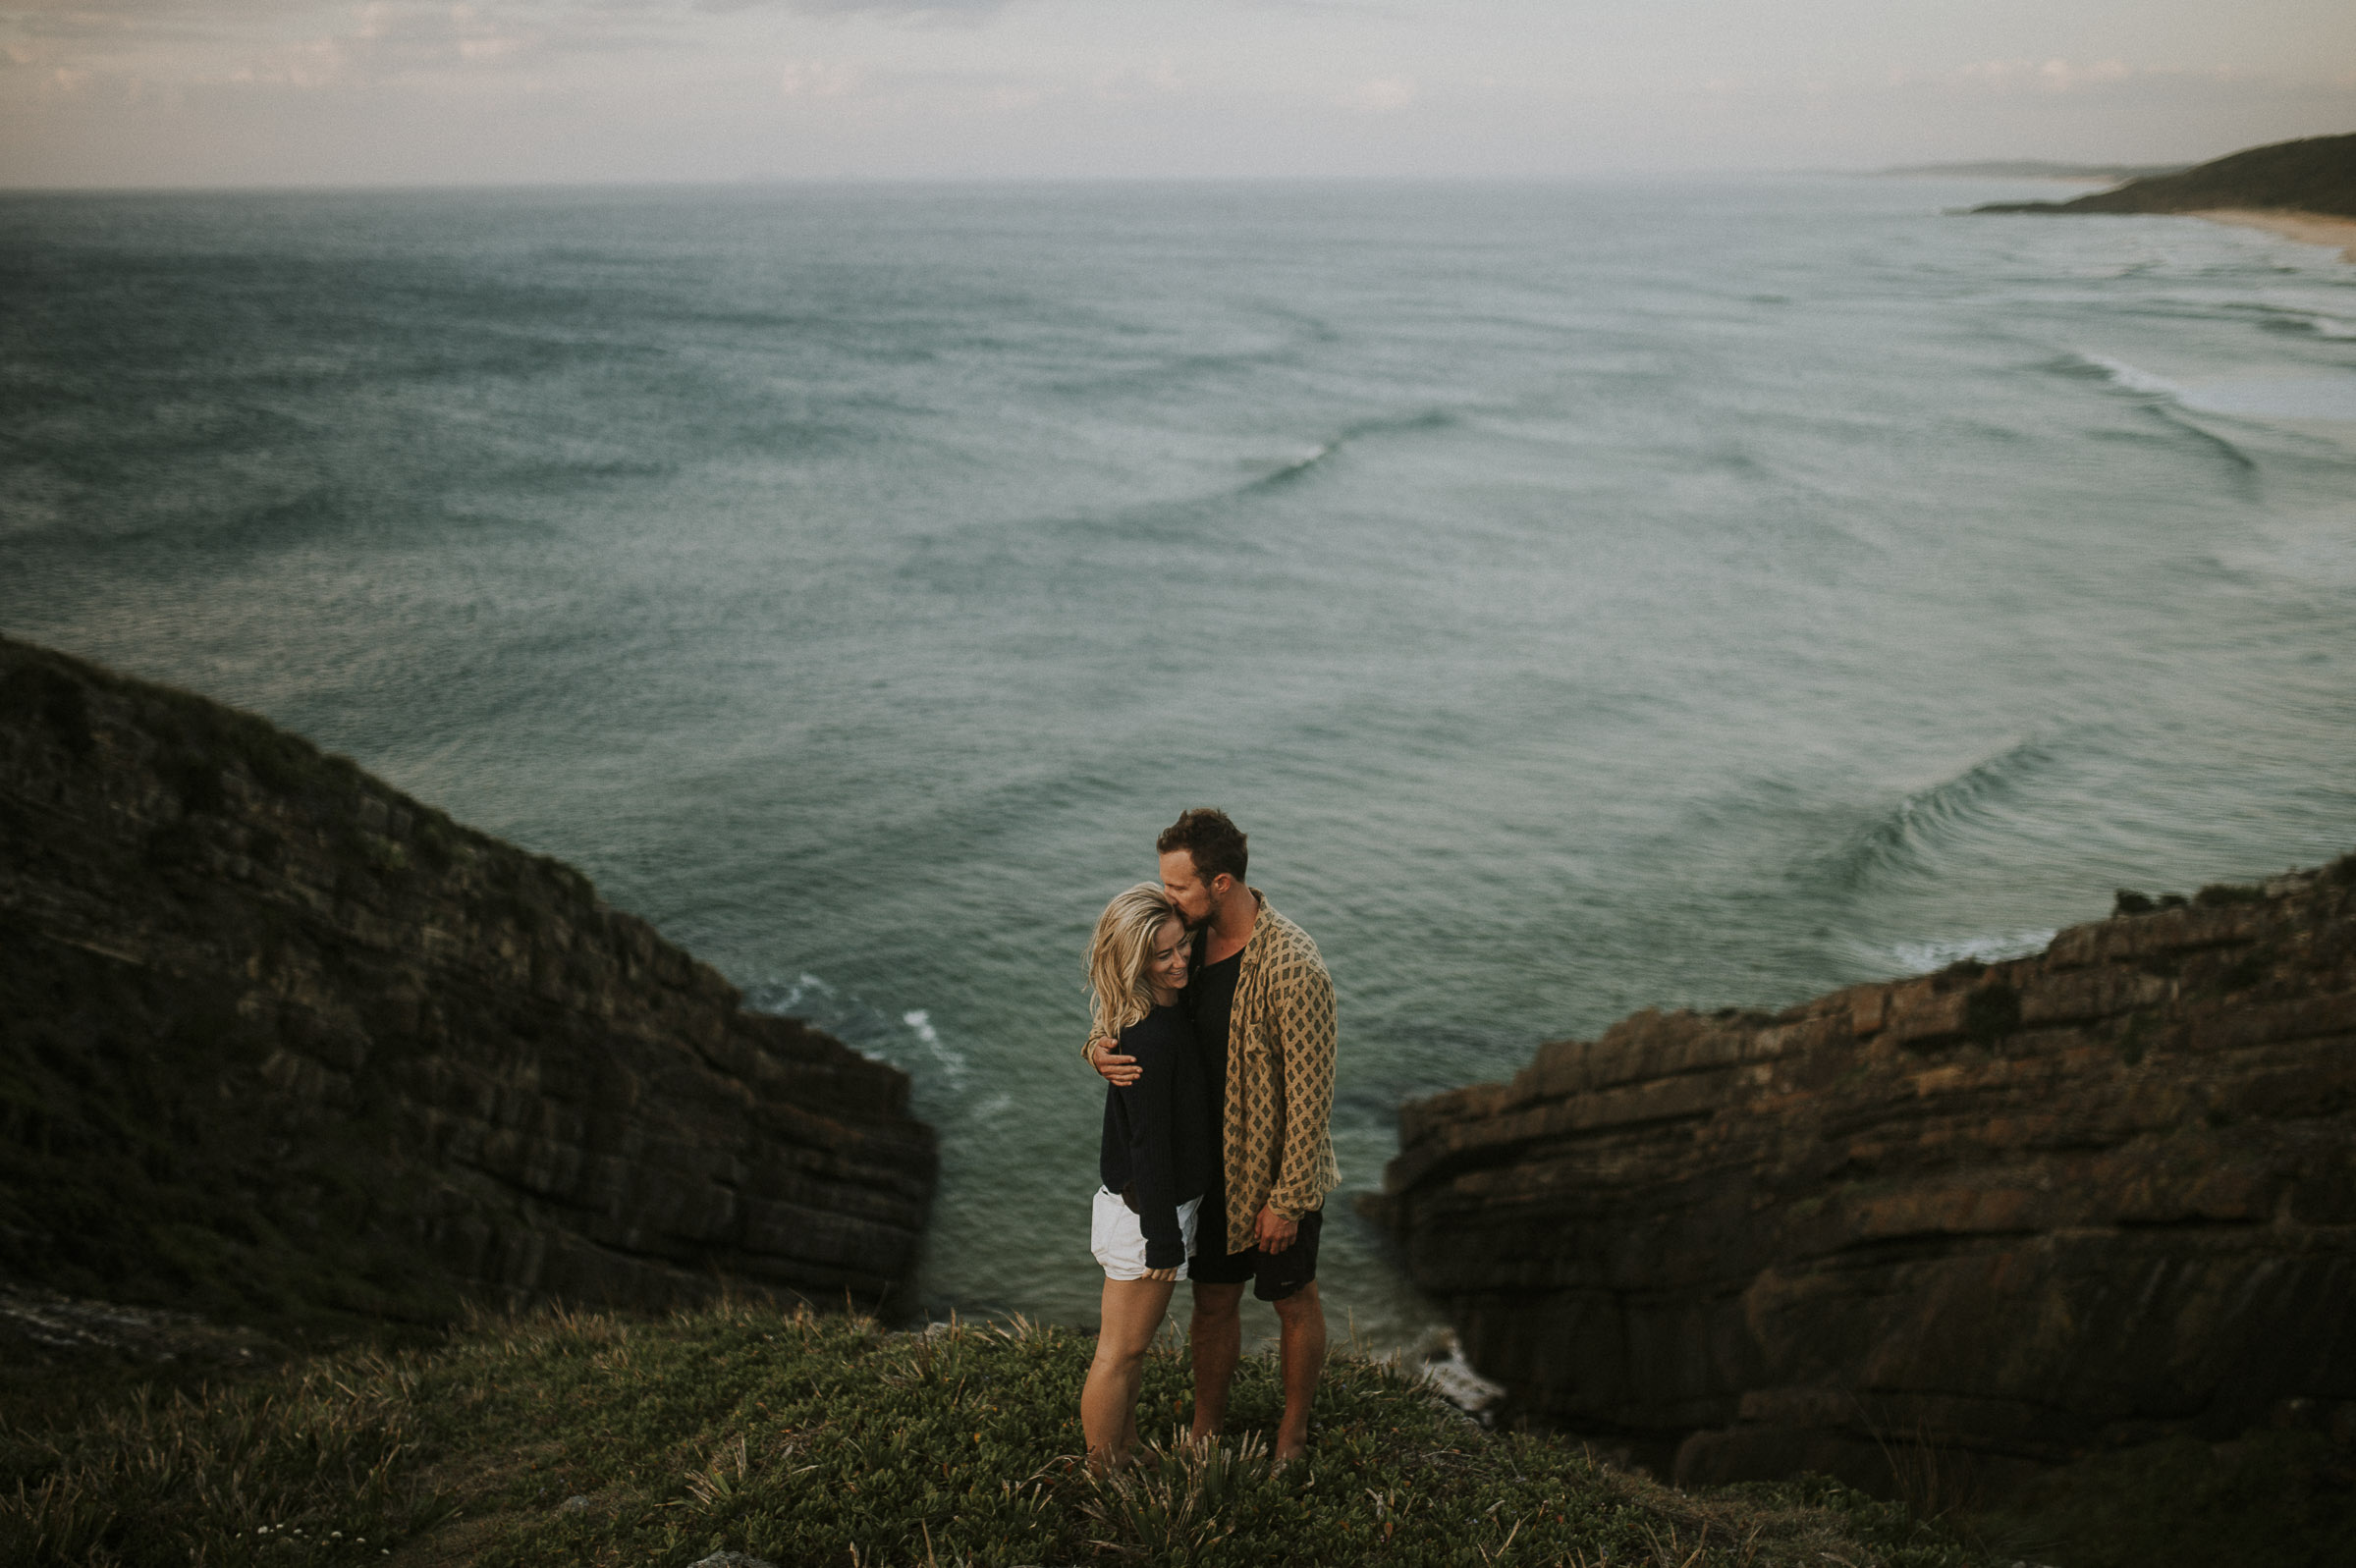 Jess_Nick_Treachary_Engagement_Shoot_Blog-29.jpg